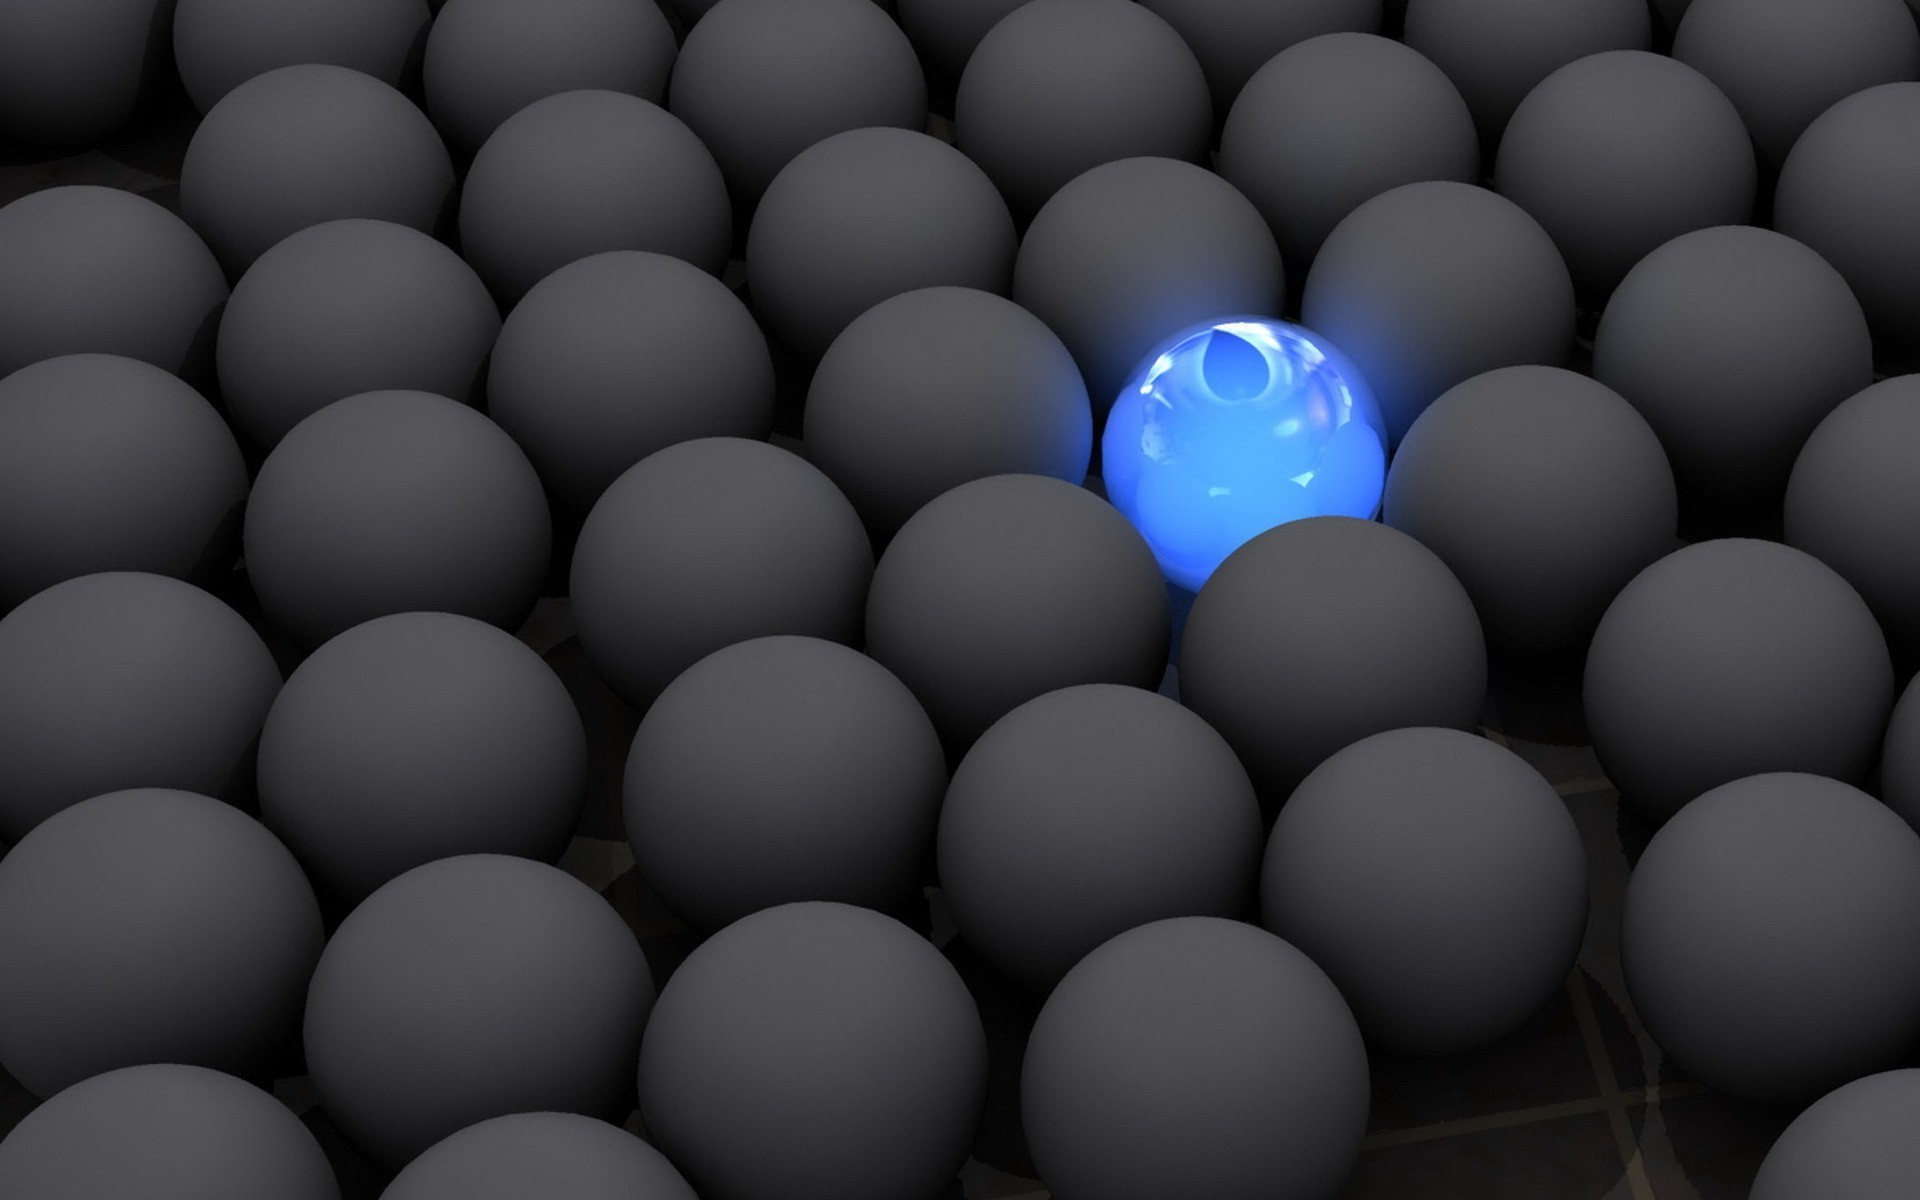 A glowing blue sphere among the masses of the same grey balls